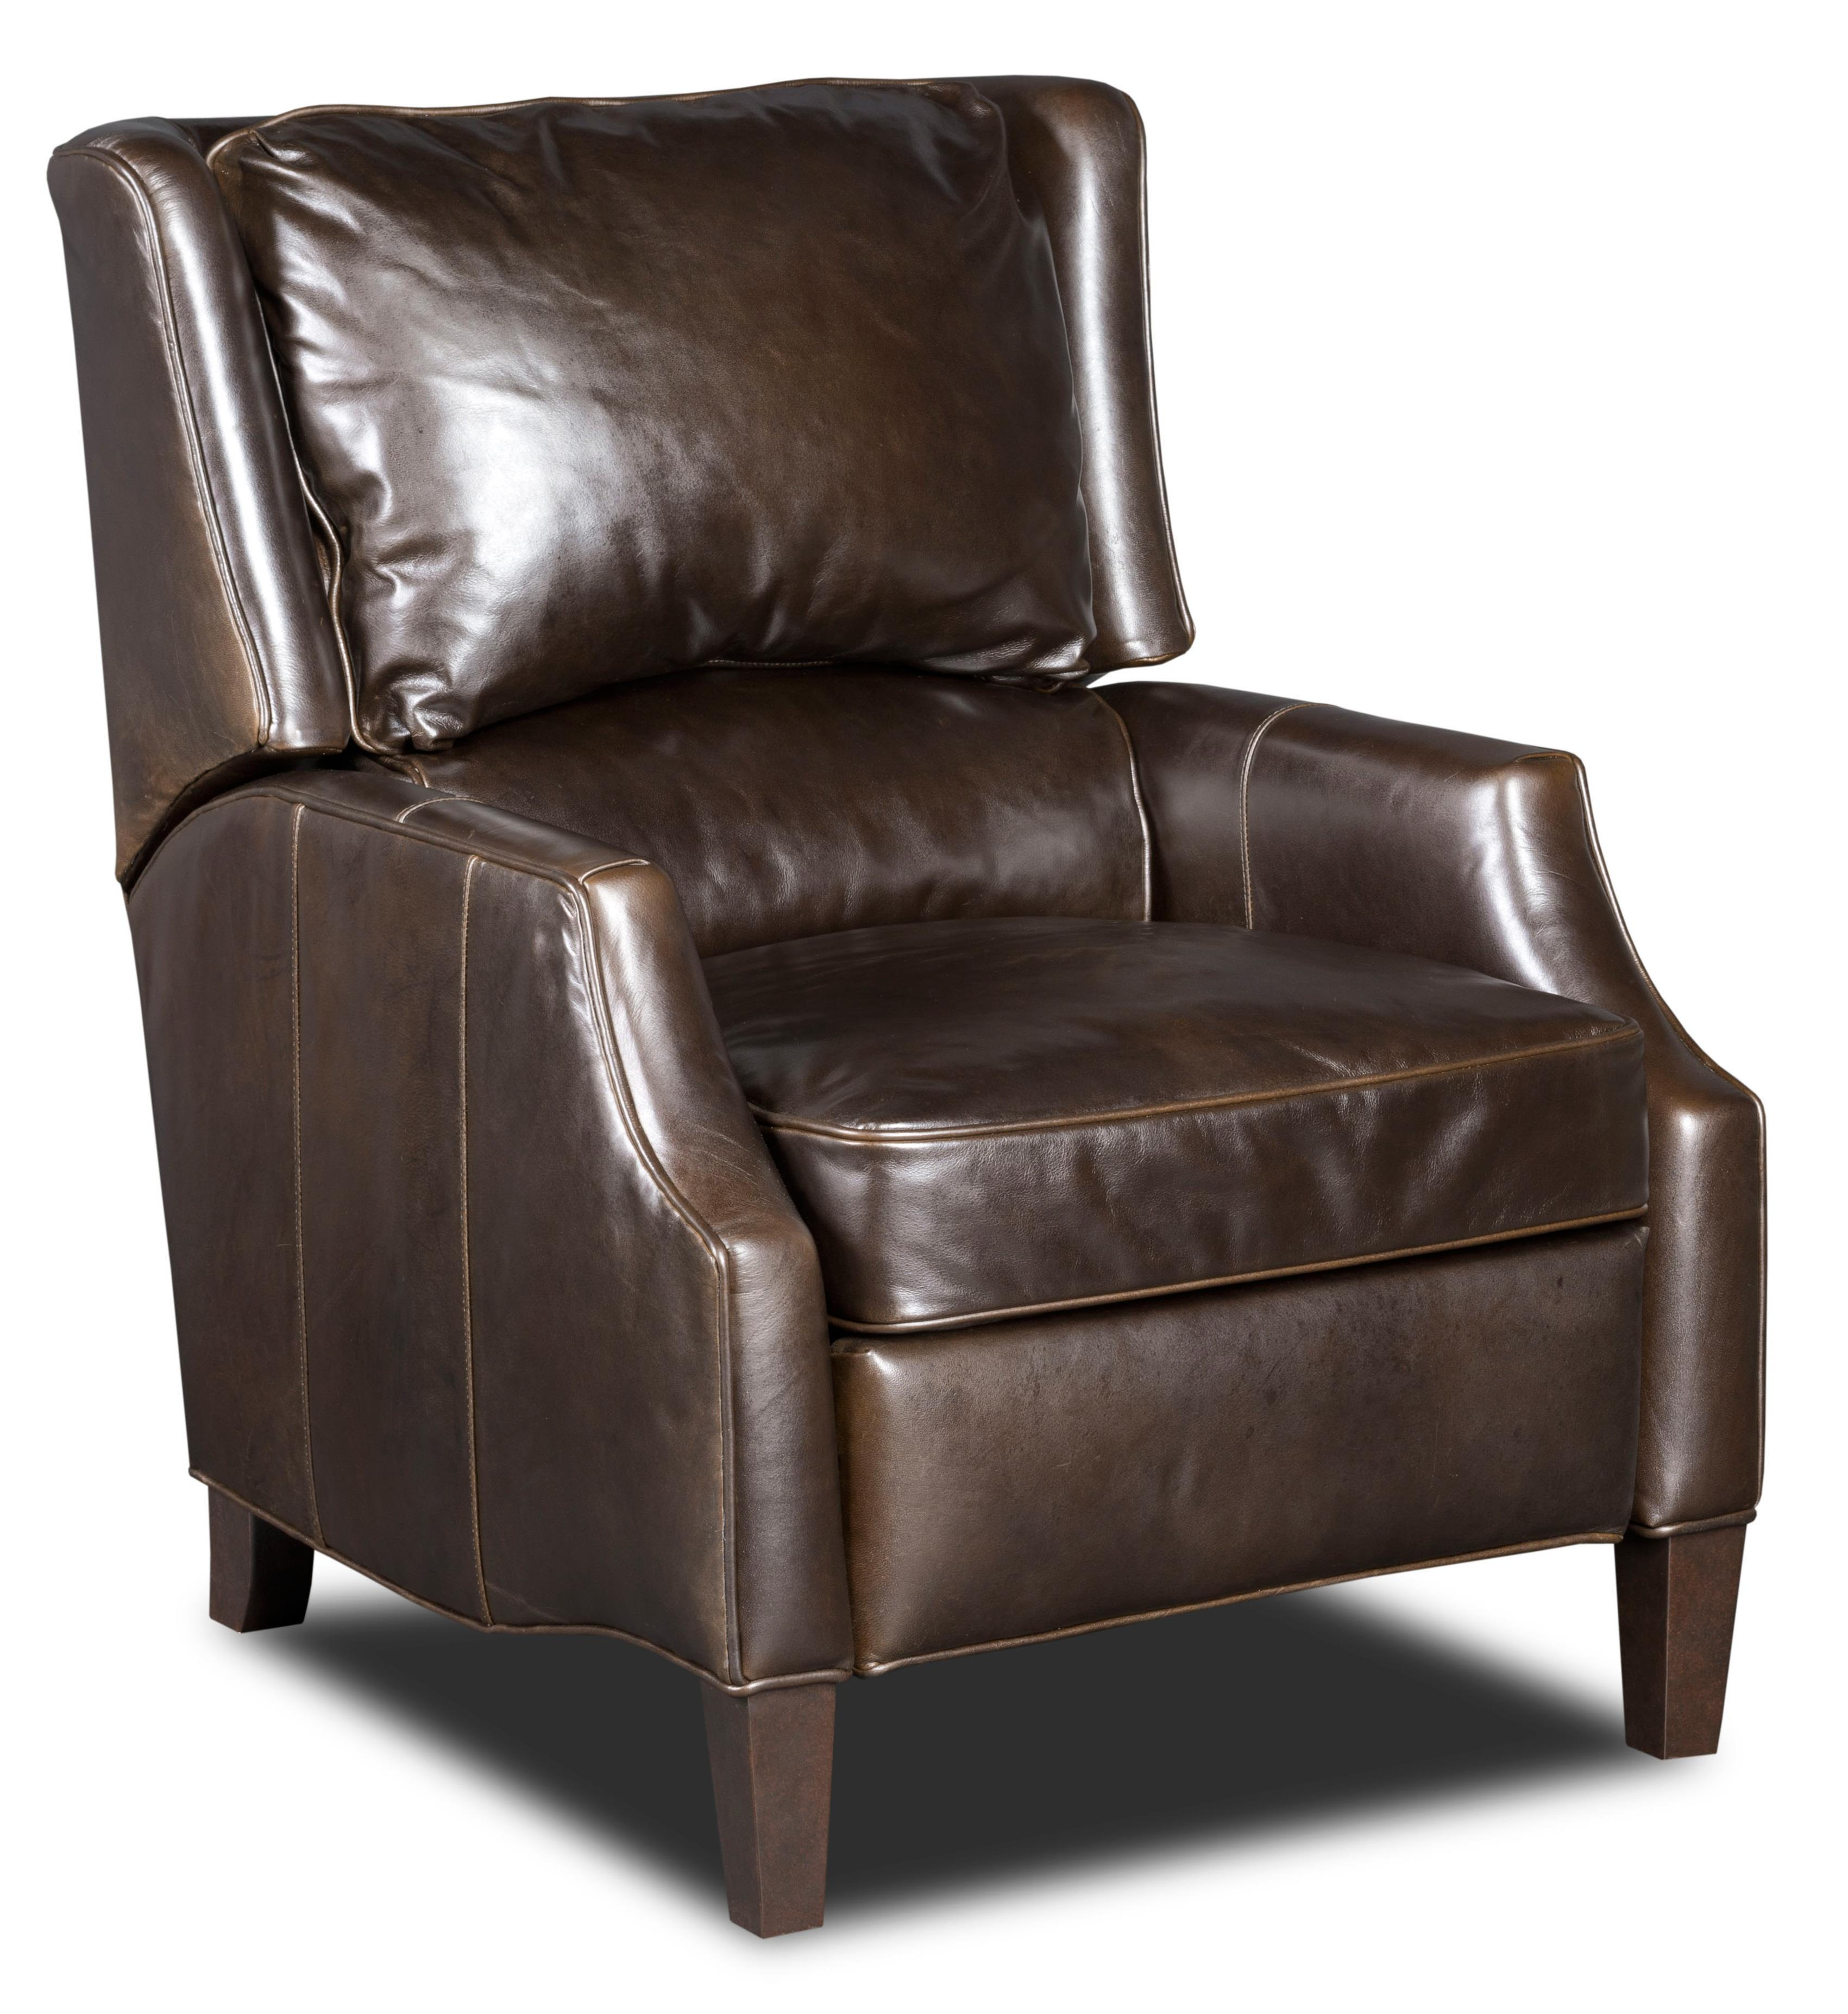 Hooker Furniture Reclining Chairs Harper Recliner - Item Number: RC147-088